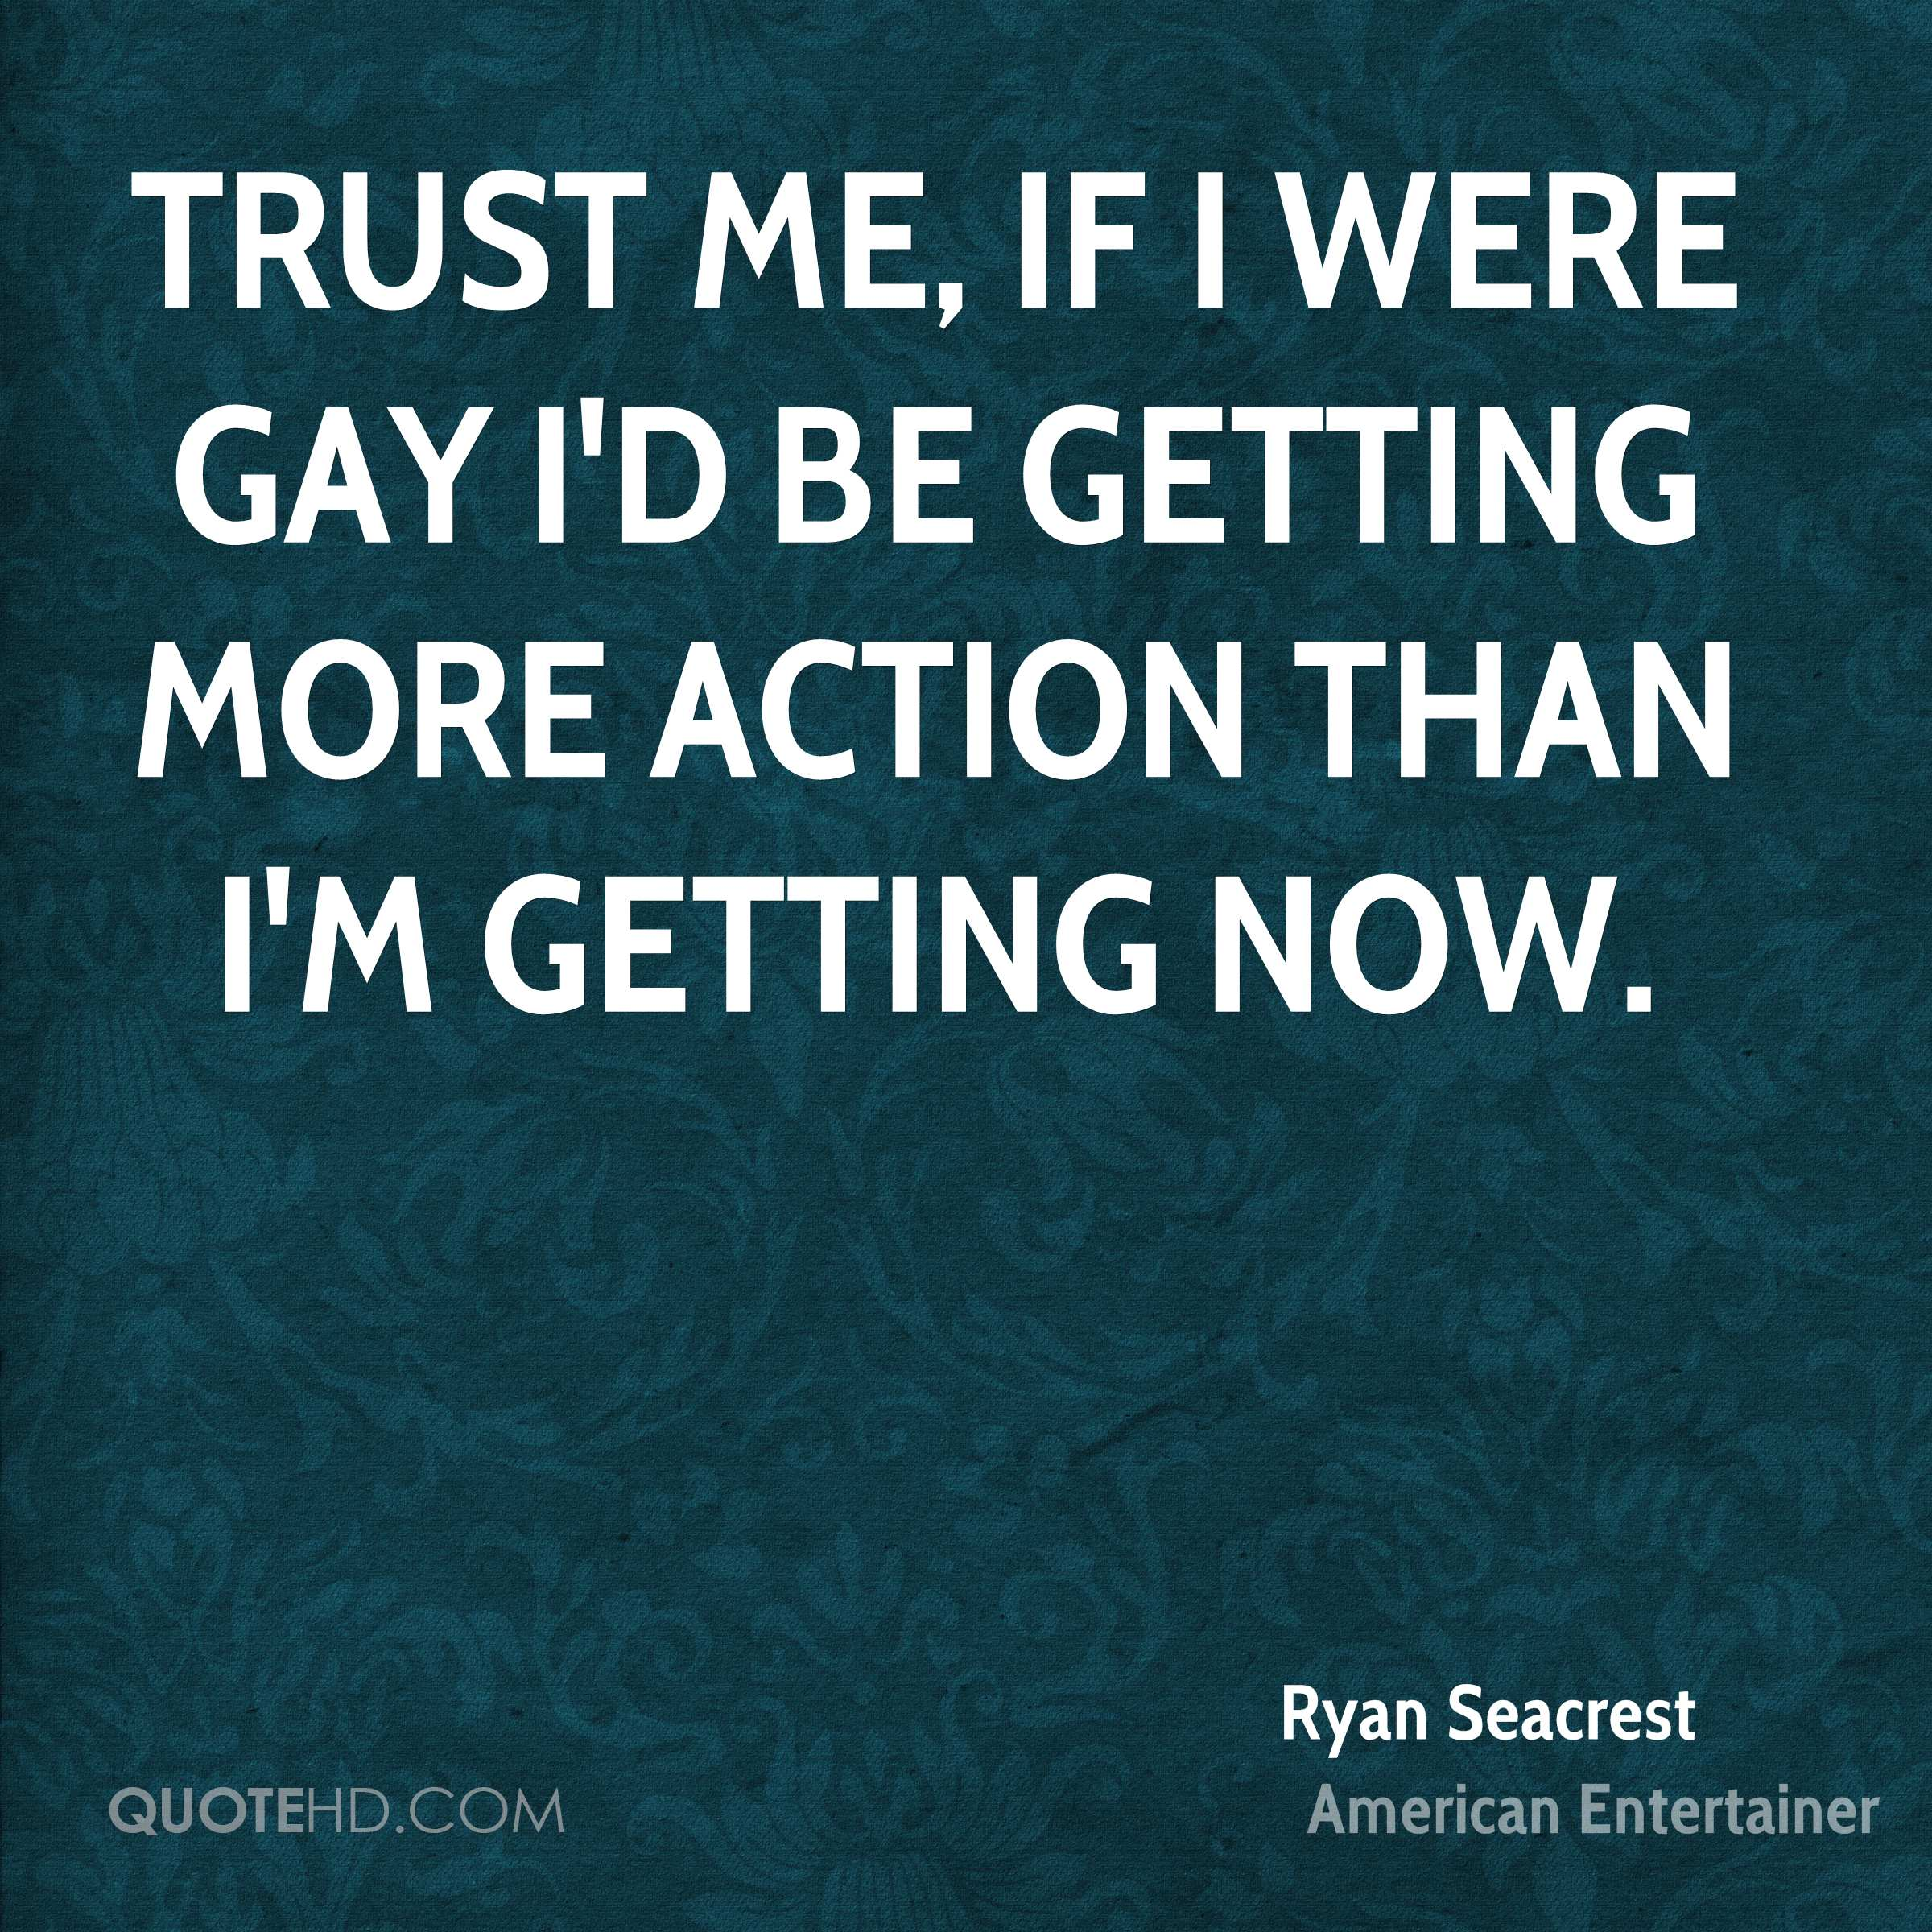 Trust me, if I were gay I'd be getting more action than I'm getting now.